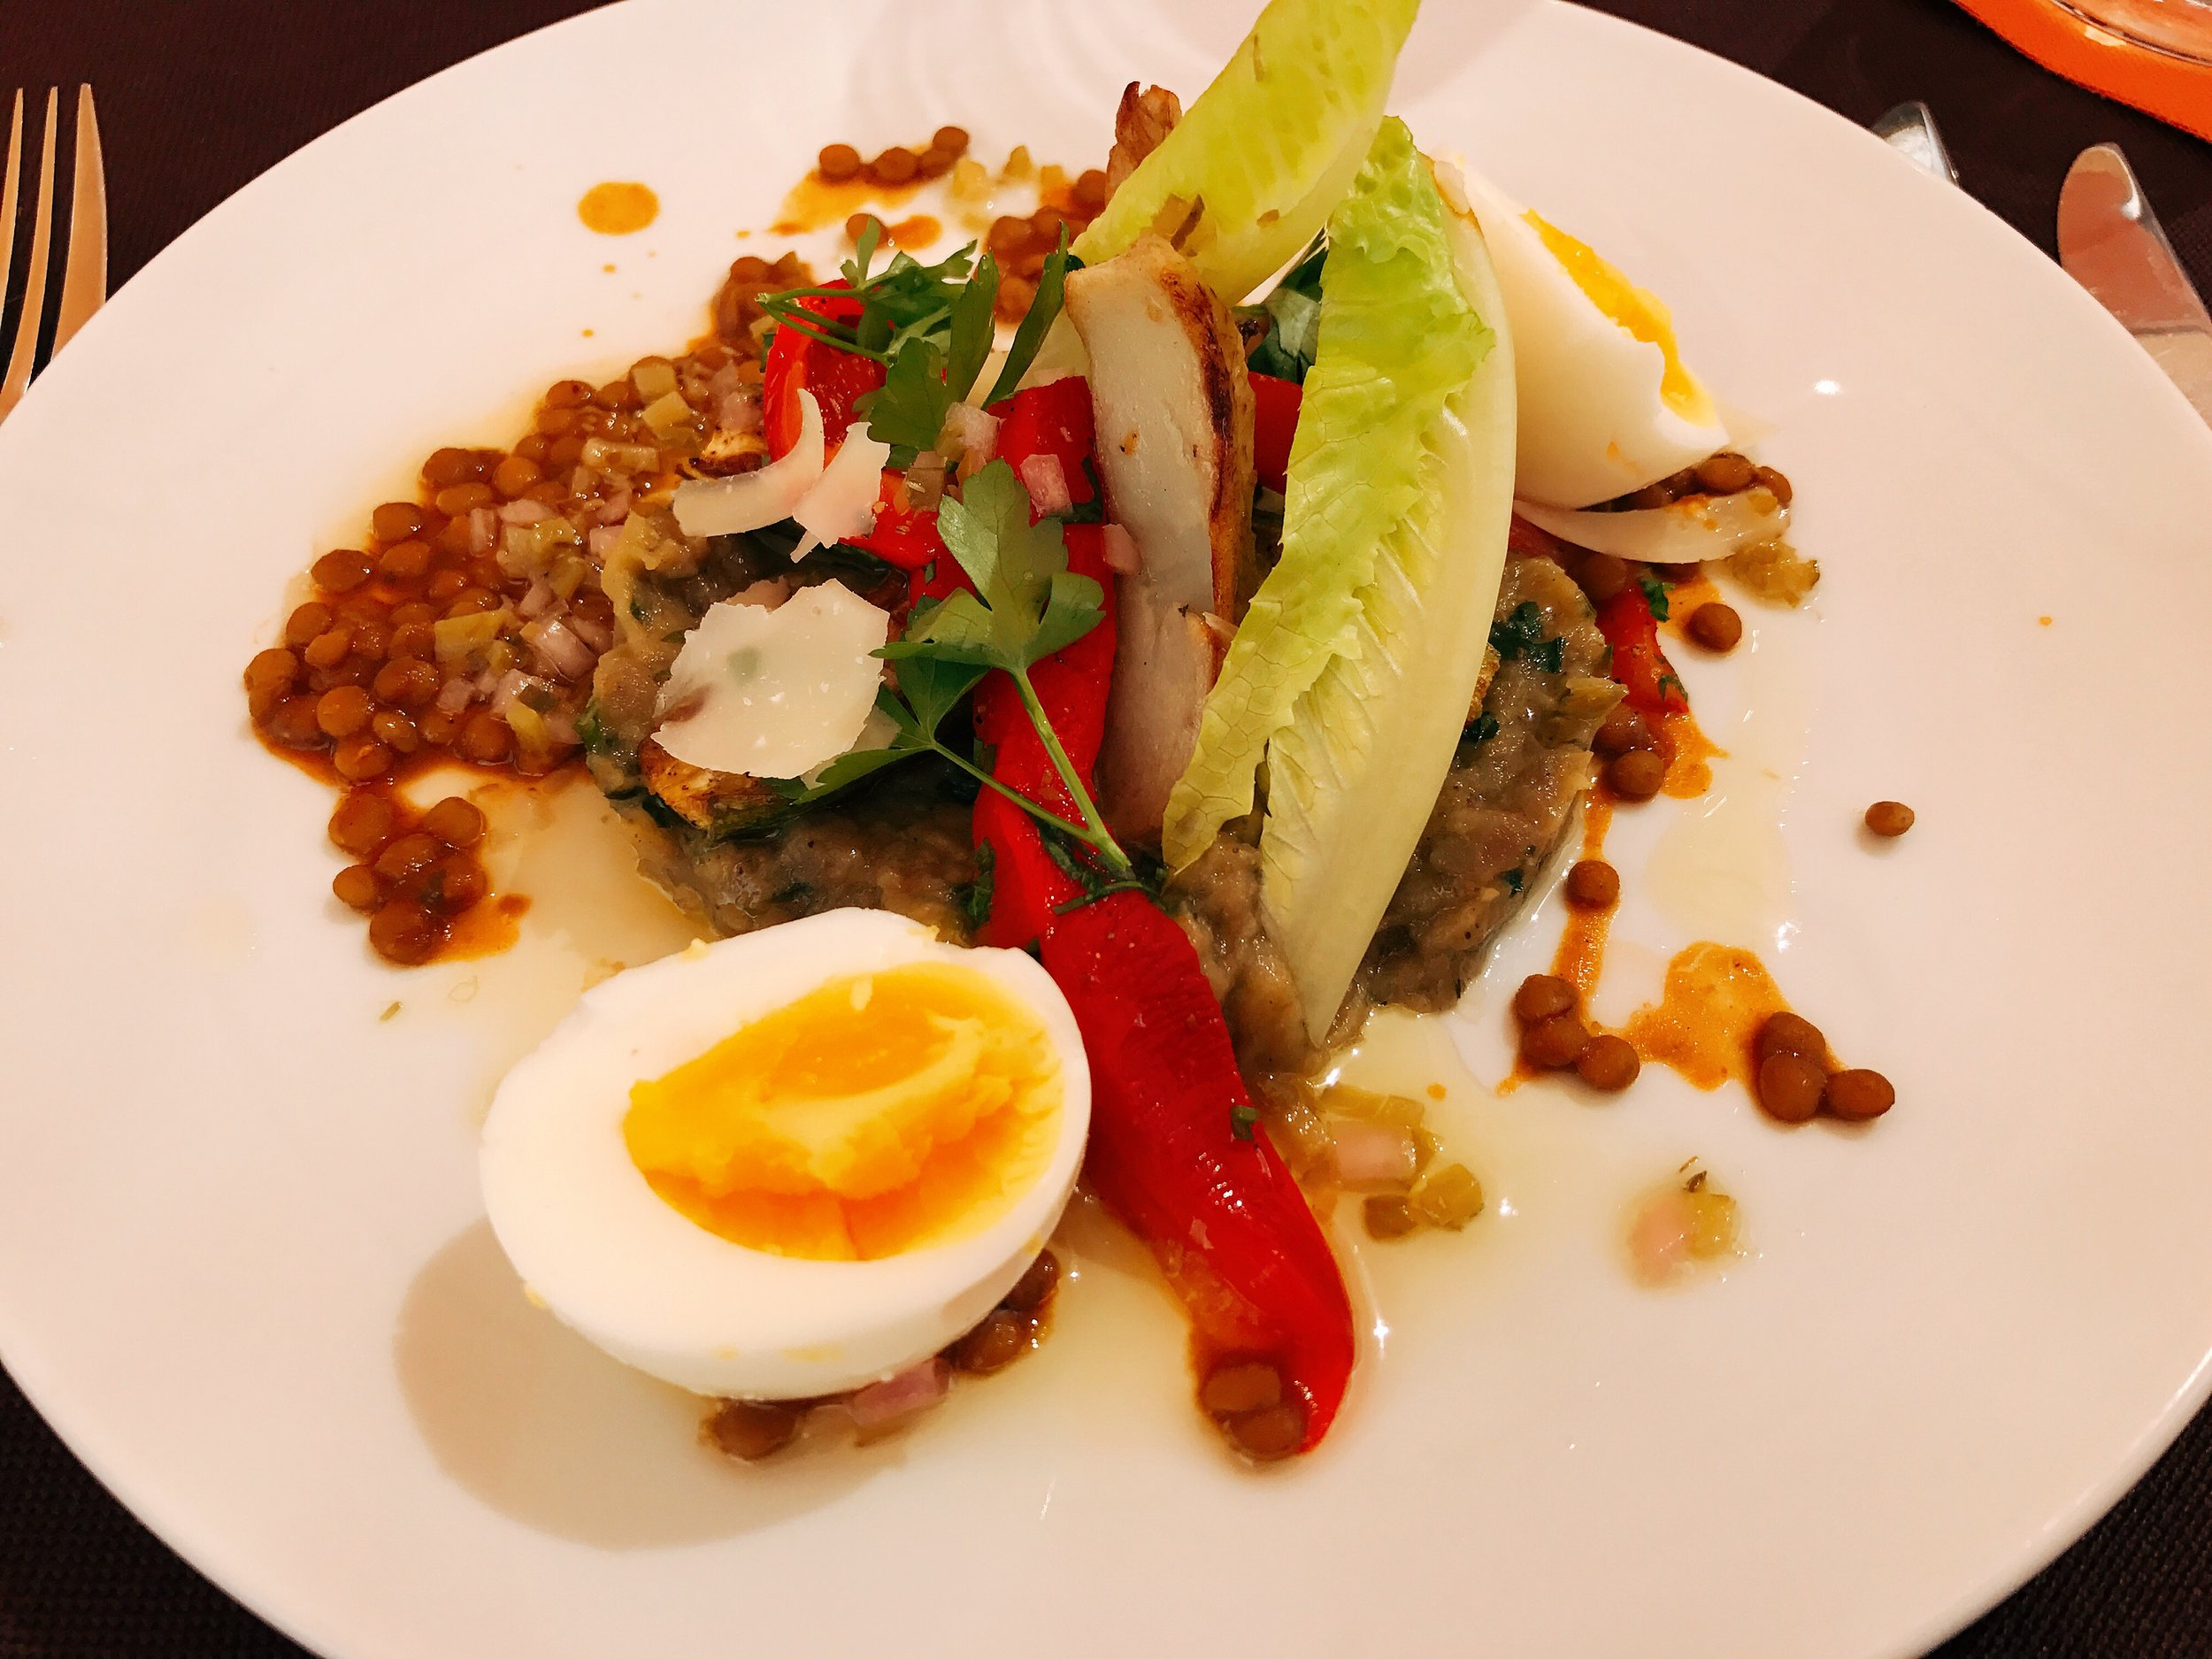 Grilled and Roasted Market Vegetable Salad with Soft Boiled Eggs, Parmesan Shavings, Lentils served with a Herb Vinaigrette